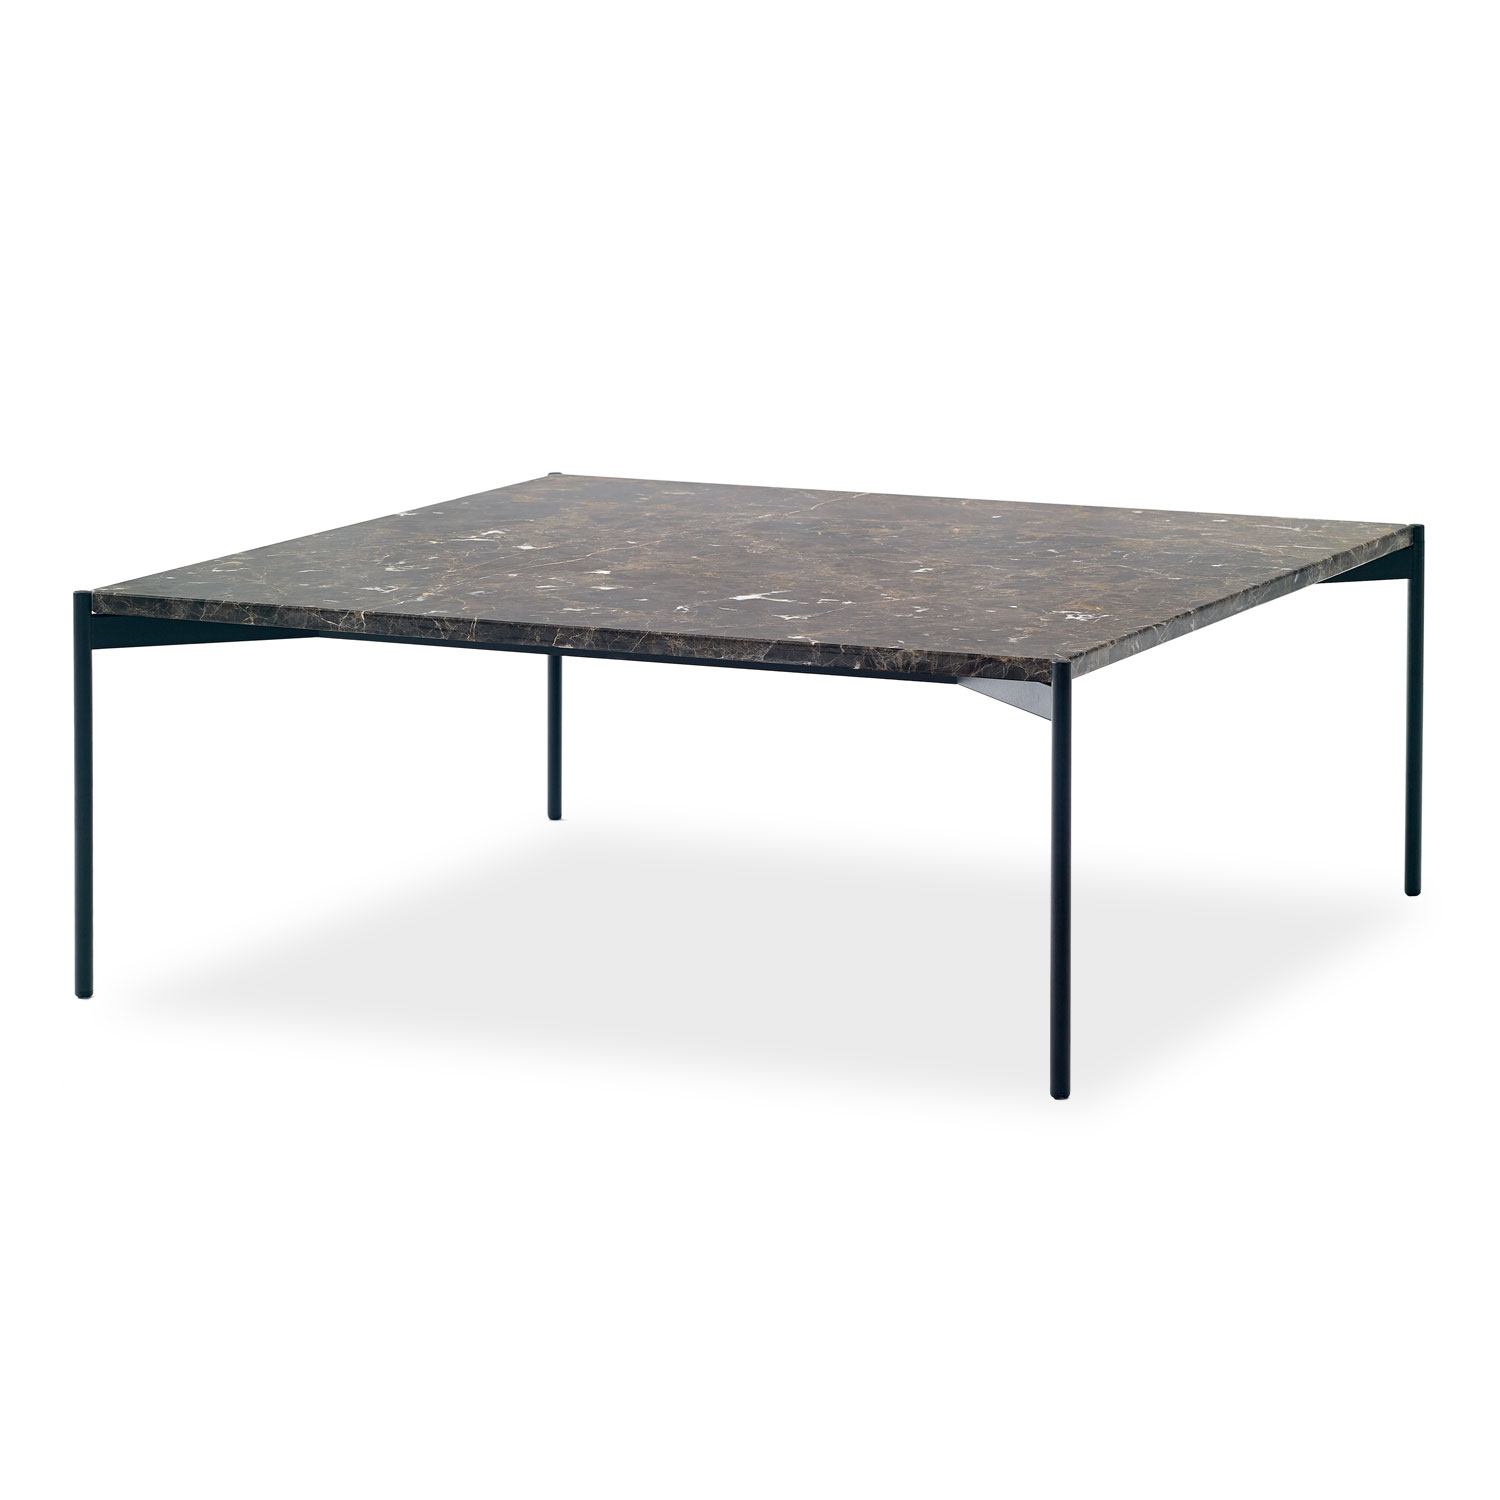 Plateau Table Rektangulärt White Carrara Soffbord | Adea